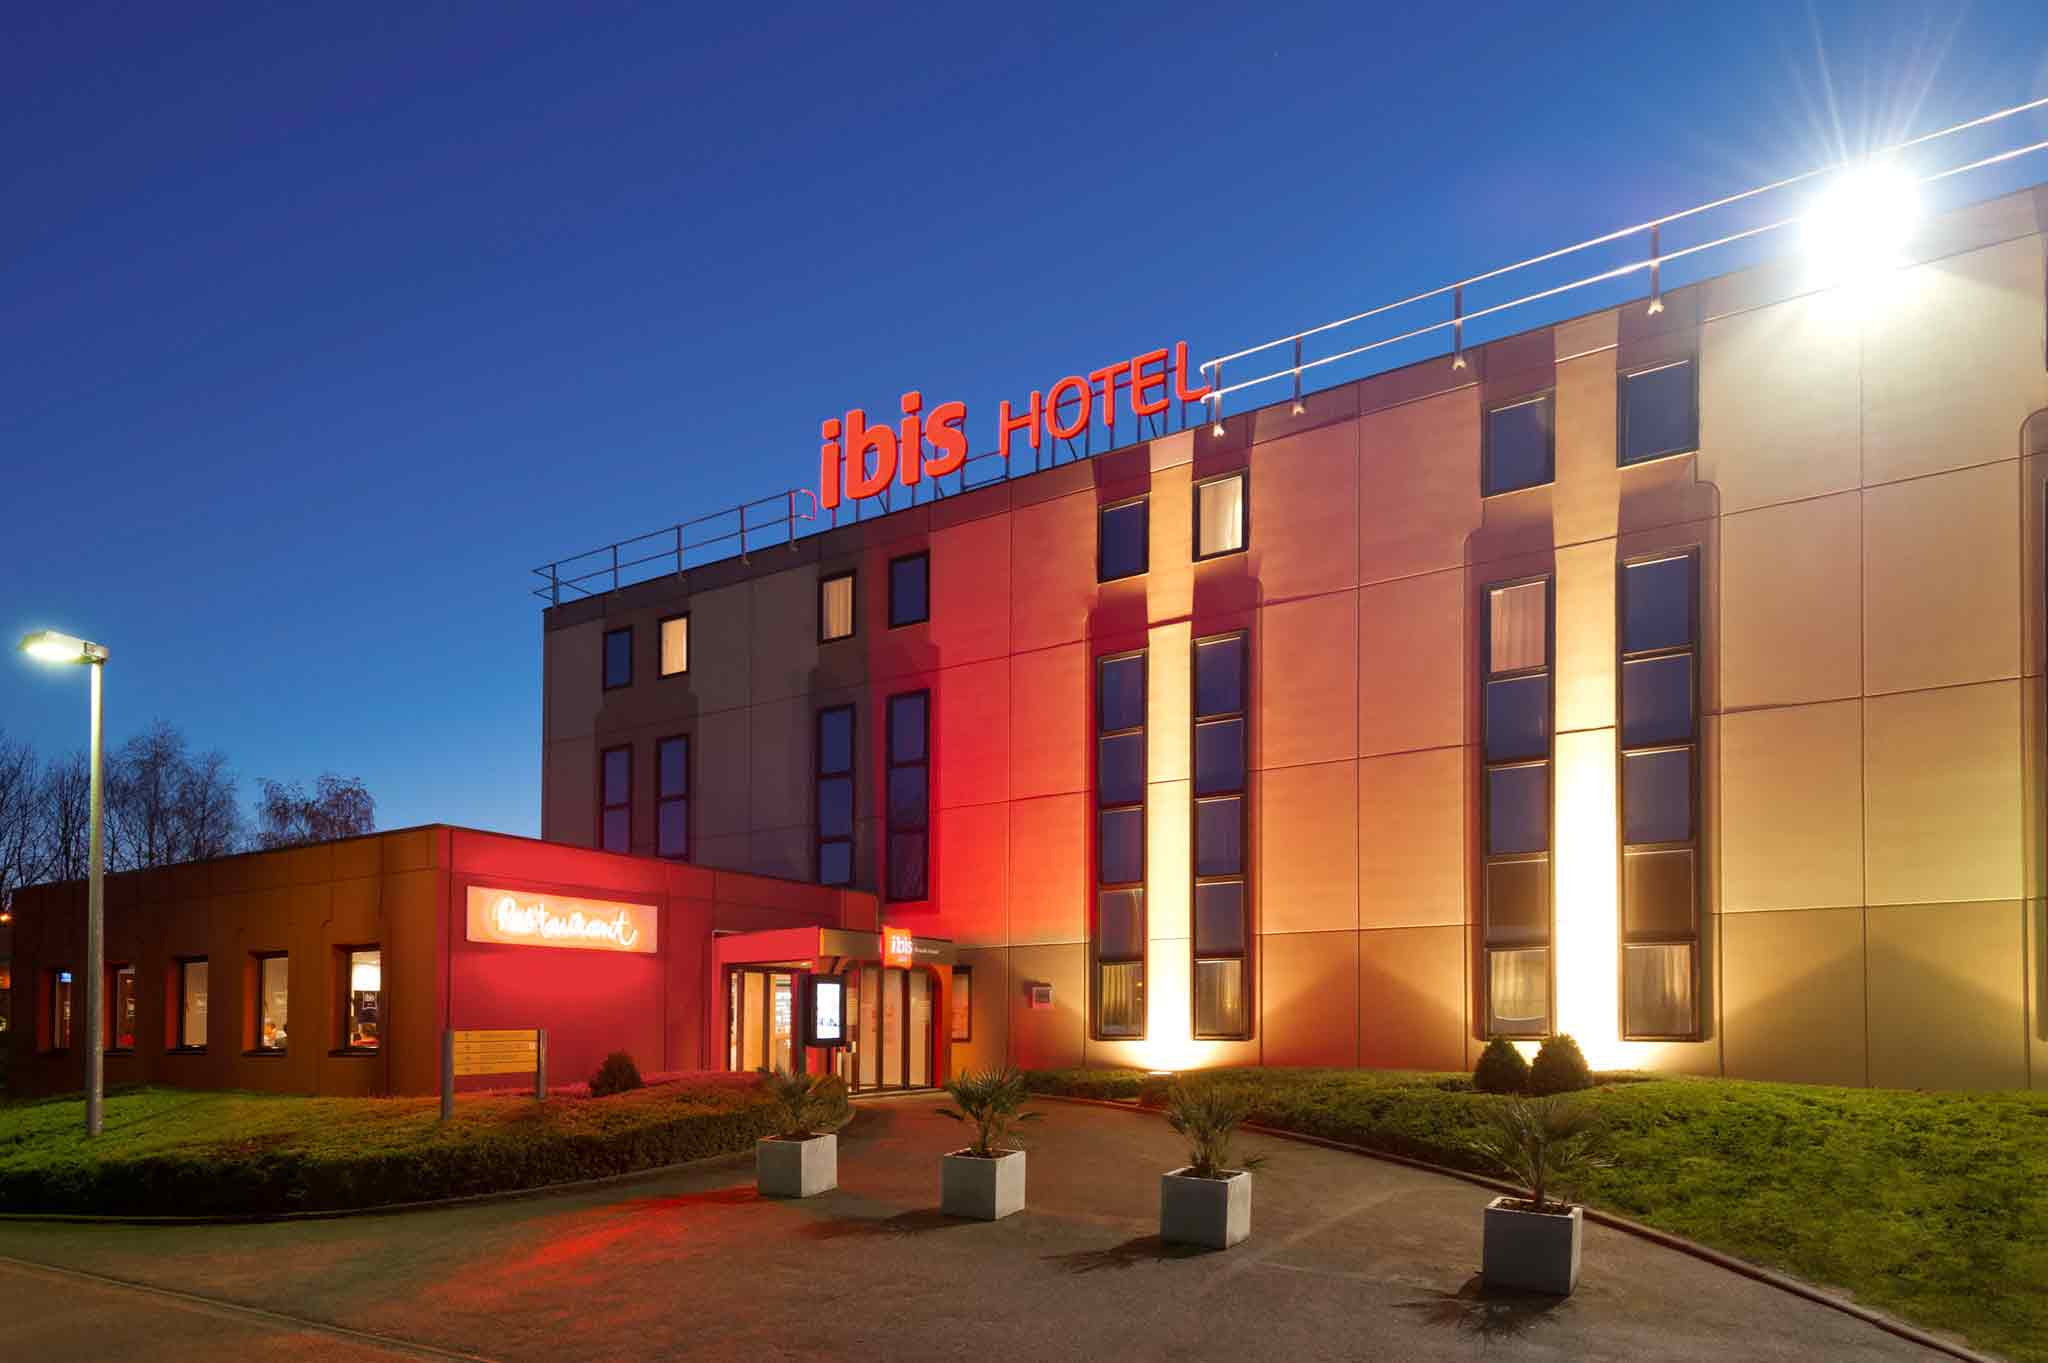 Hotel Ibis Brussels Airport